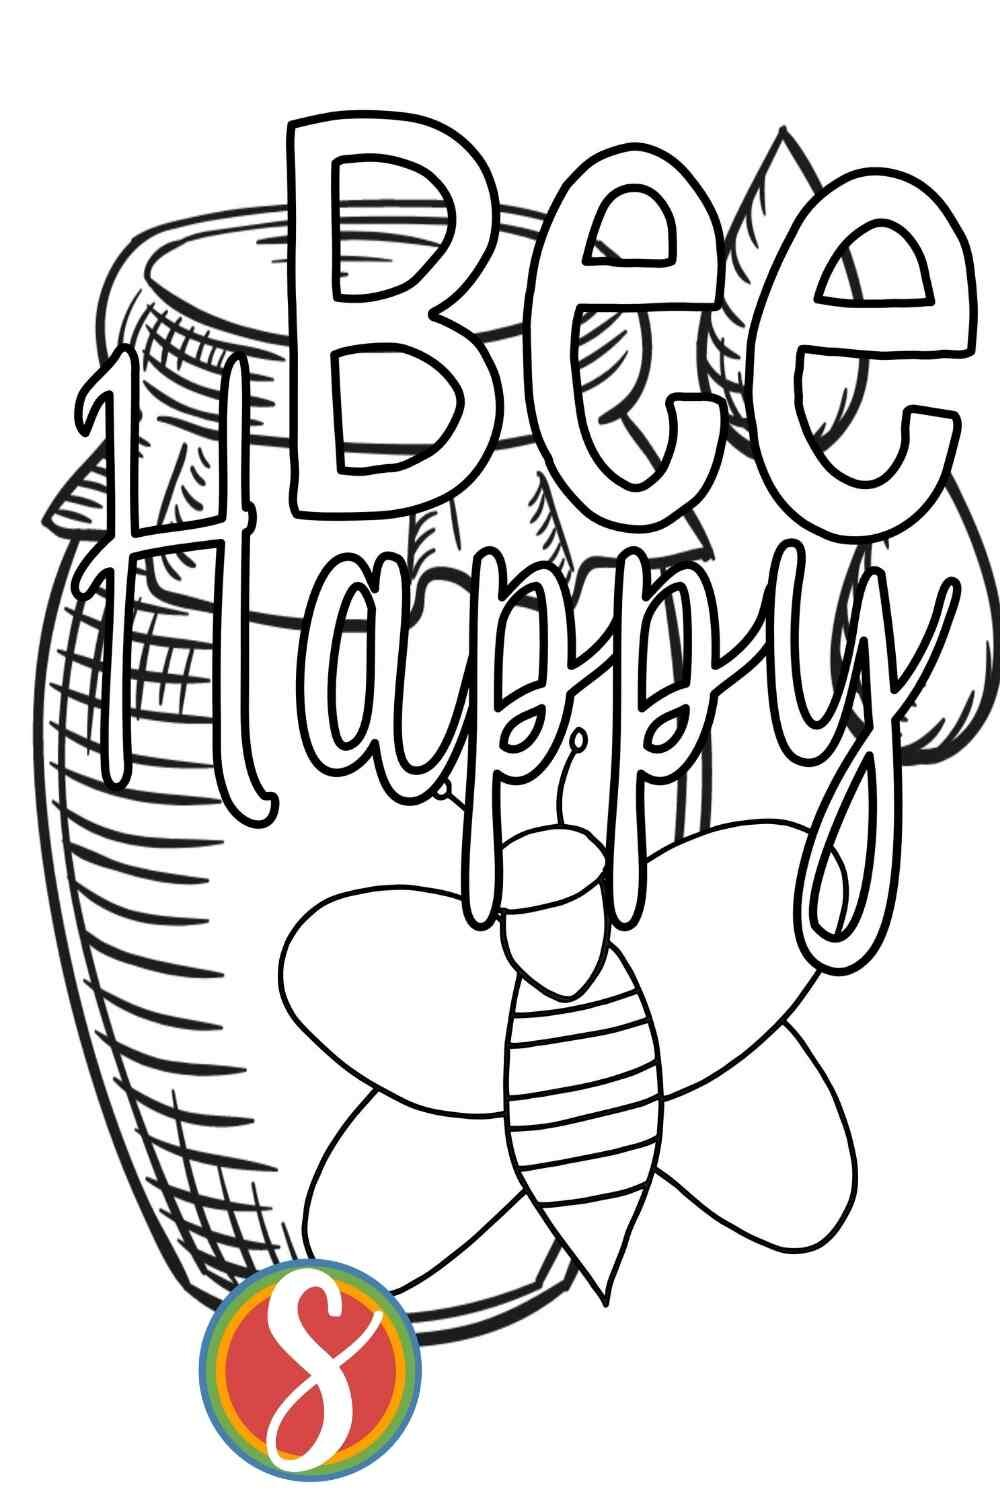 """Free bee coloring sheet printable - """"Bee Happy"""" - this free bee coloring page has a bee and a honey pot and it's just so cute and fun to color. Get it totally free today from Stevie Doodles today!"""